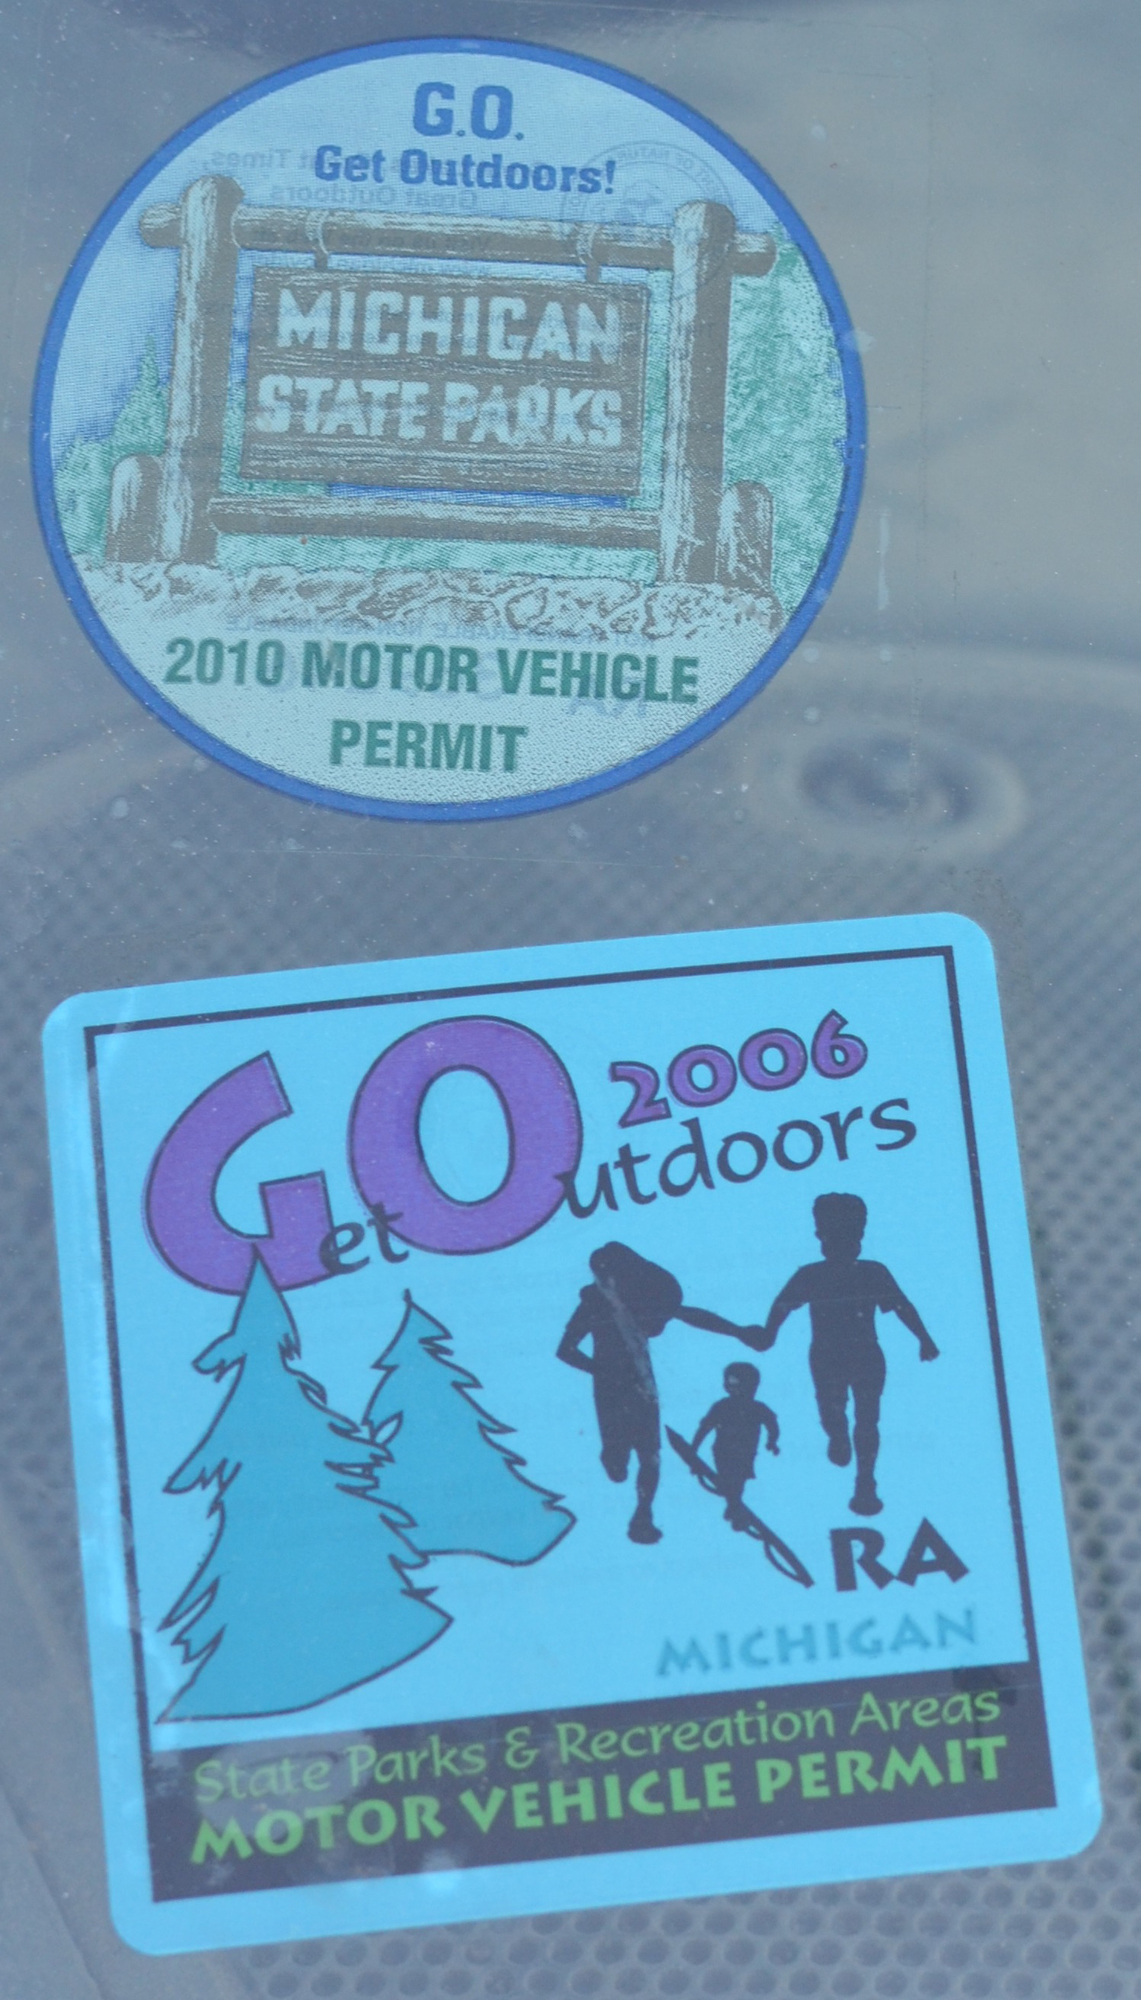 A couple of old Michigan Department of Natural Resources park permits still affixed to a windshield.